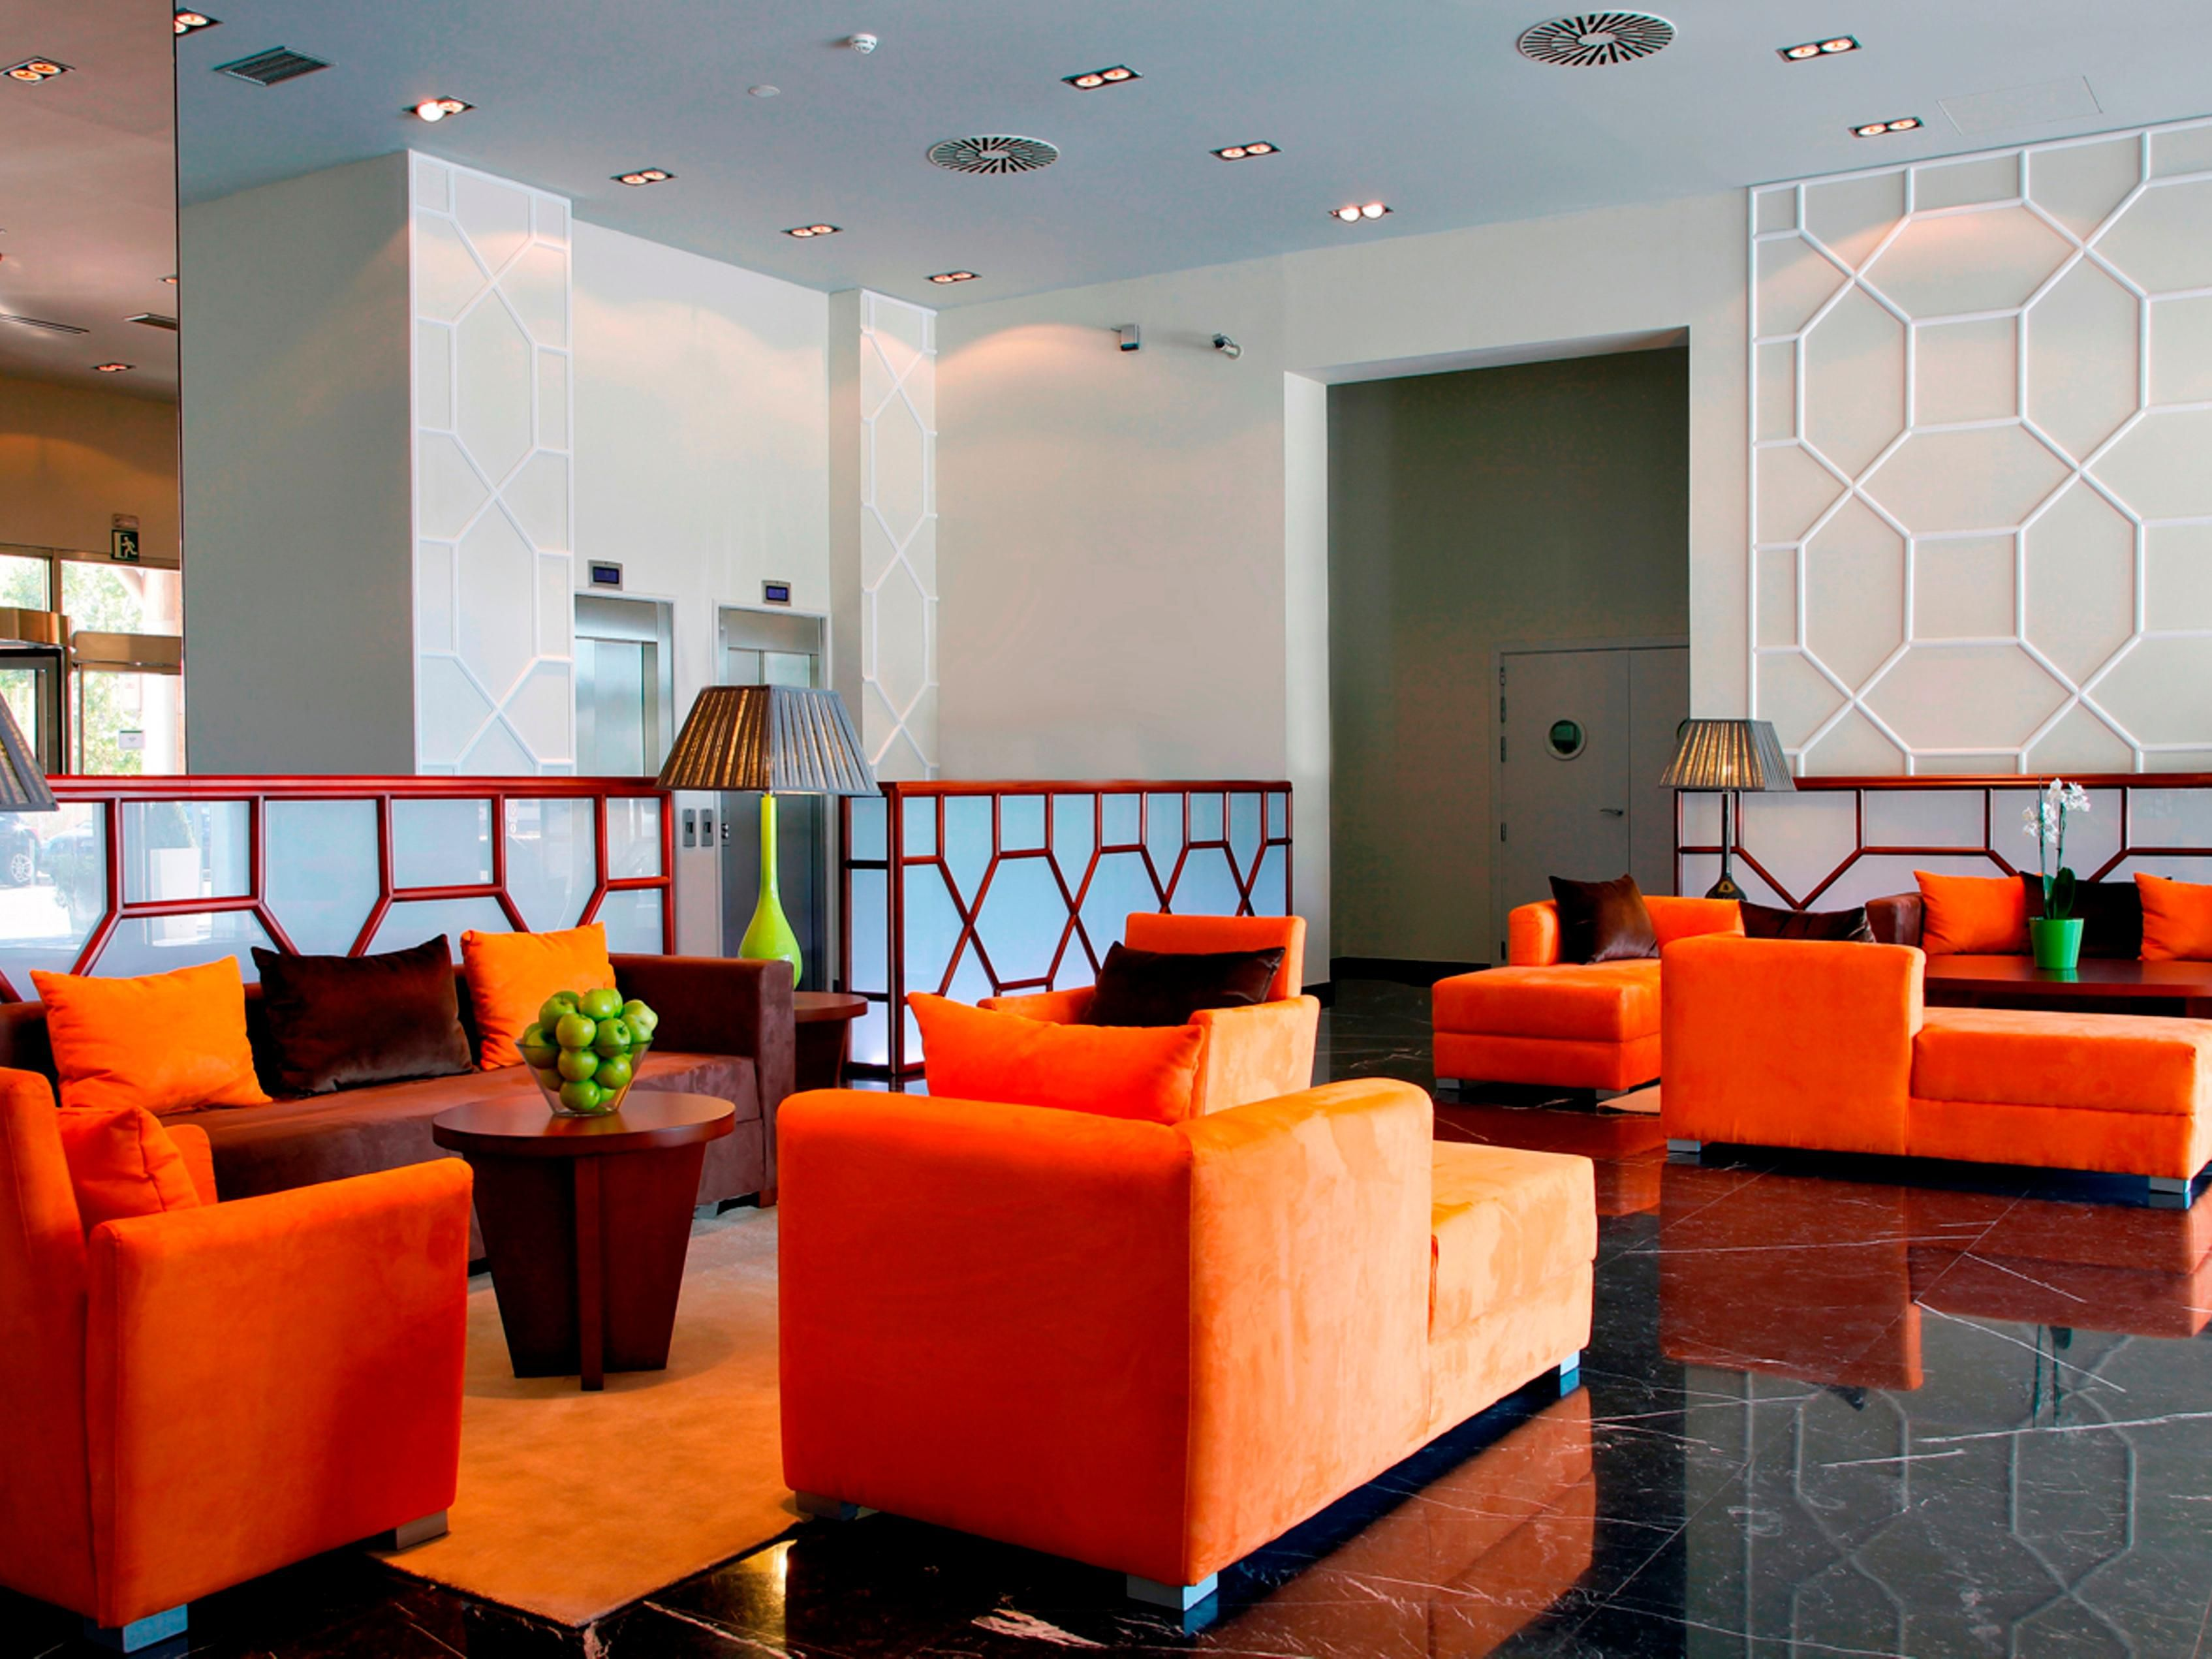 Holiday Inn Madrid - Las Tablas Lobby